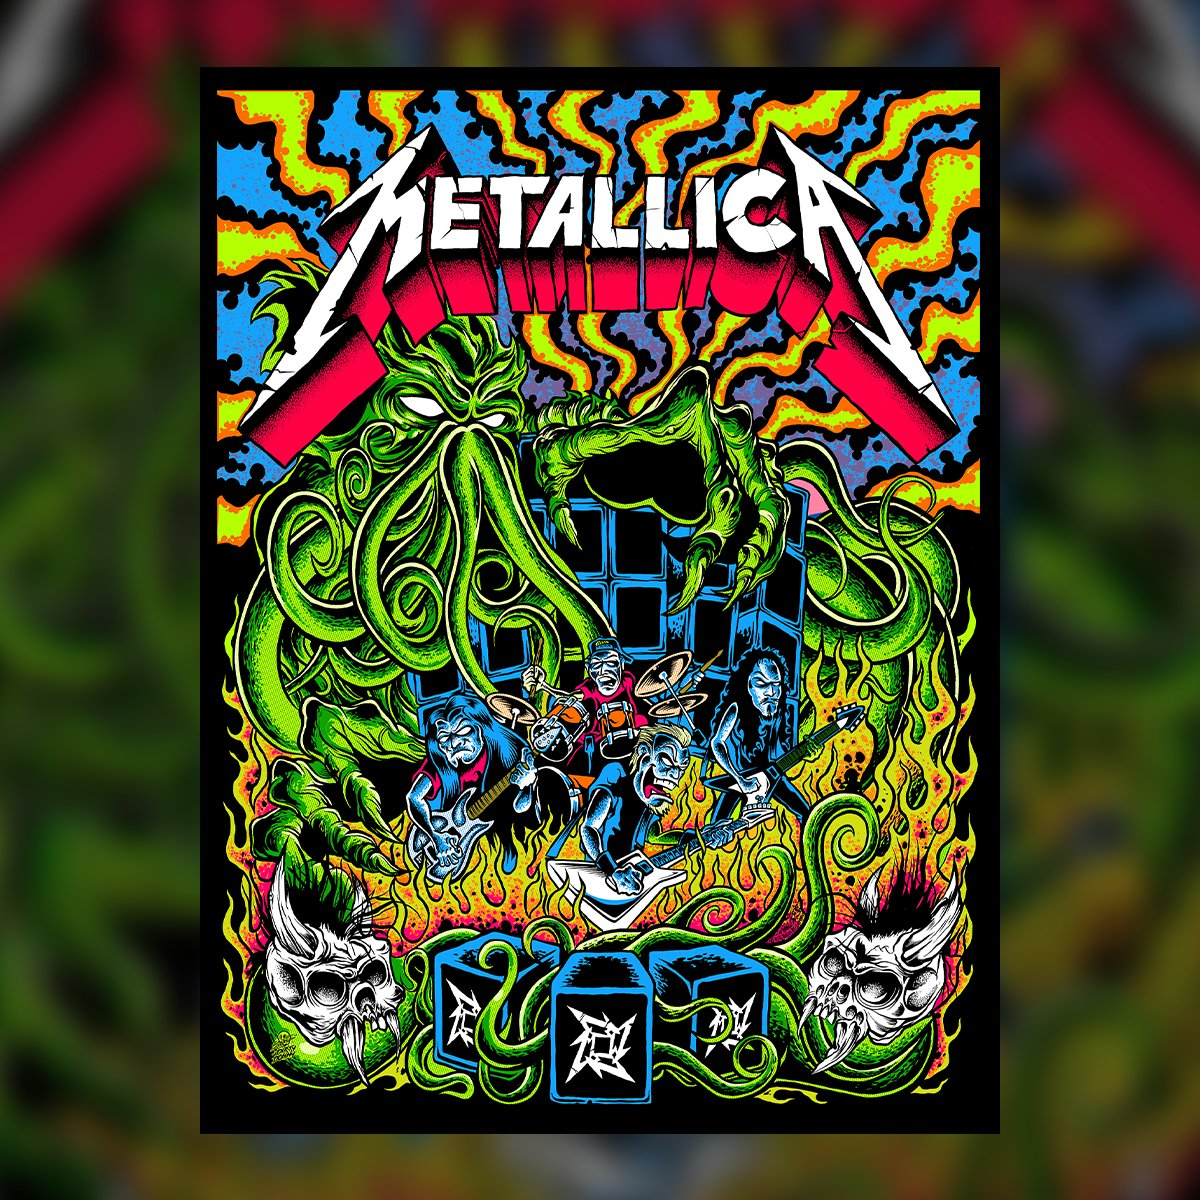 Coming Thursday at 1 PM PDT to the Met Store: New art from our friend @dirtydonnyart! His blacklight reactive poster is limited to 500 prints and will be gone quicker than a pinball down the drain.  Also available at the @probitymerch UK/EU shop and on Donny's website. https://t.co/La1fL9Y2MP